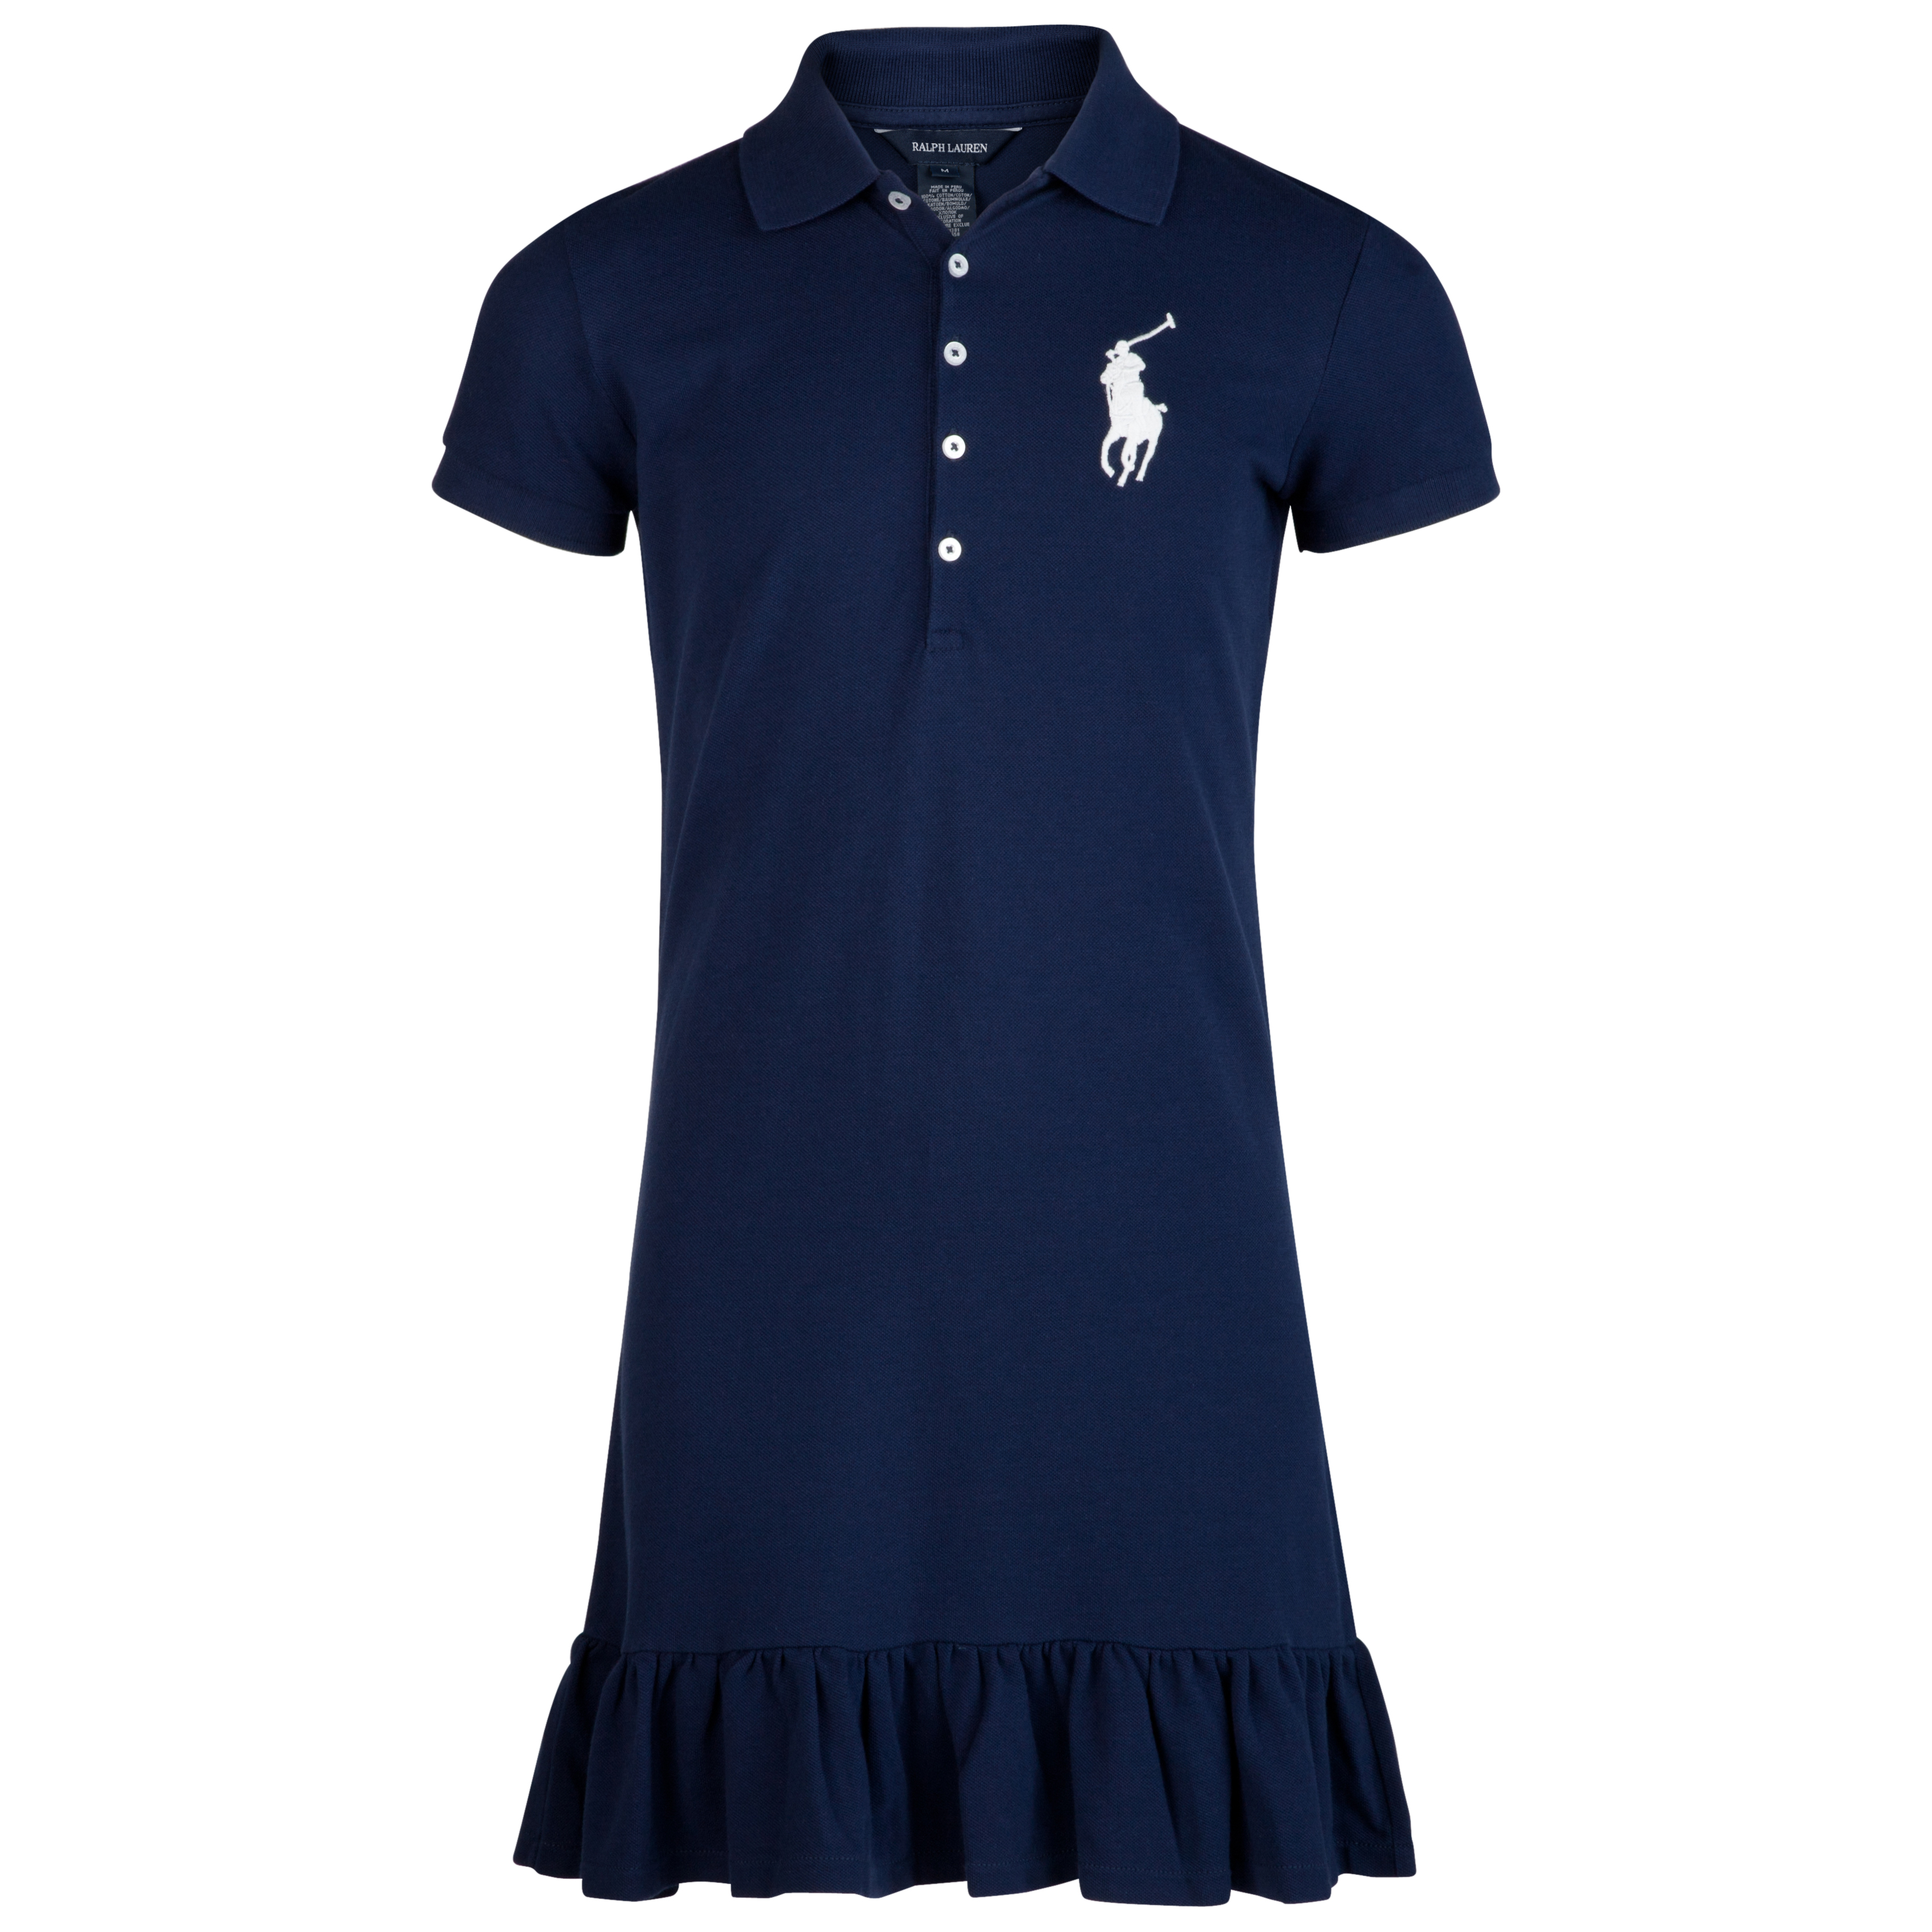 Polo Ralph Lauren Polo Dress Mesh Polo - French Navy - Girls